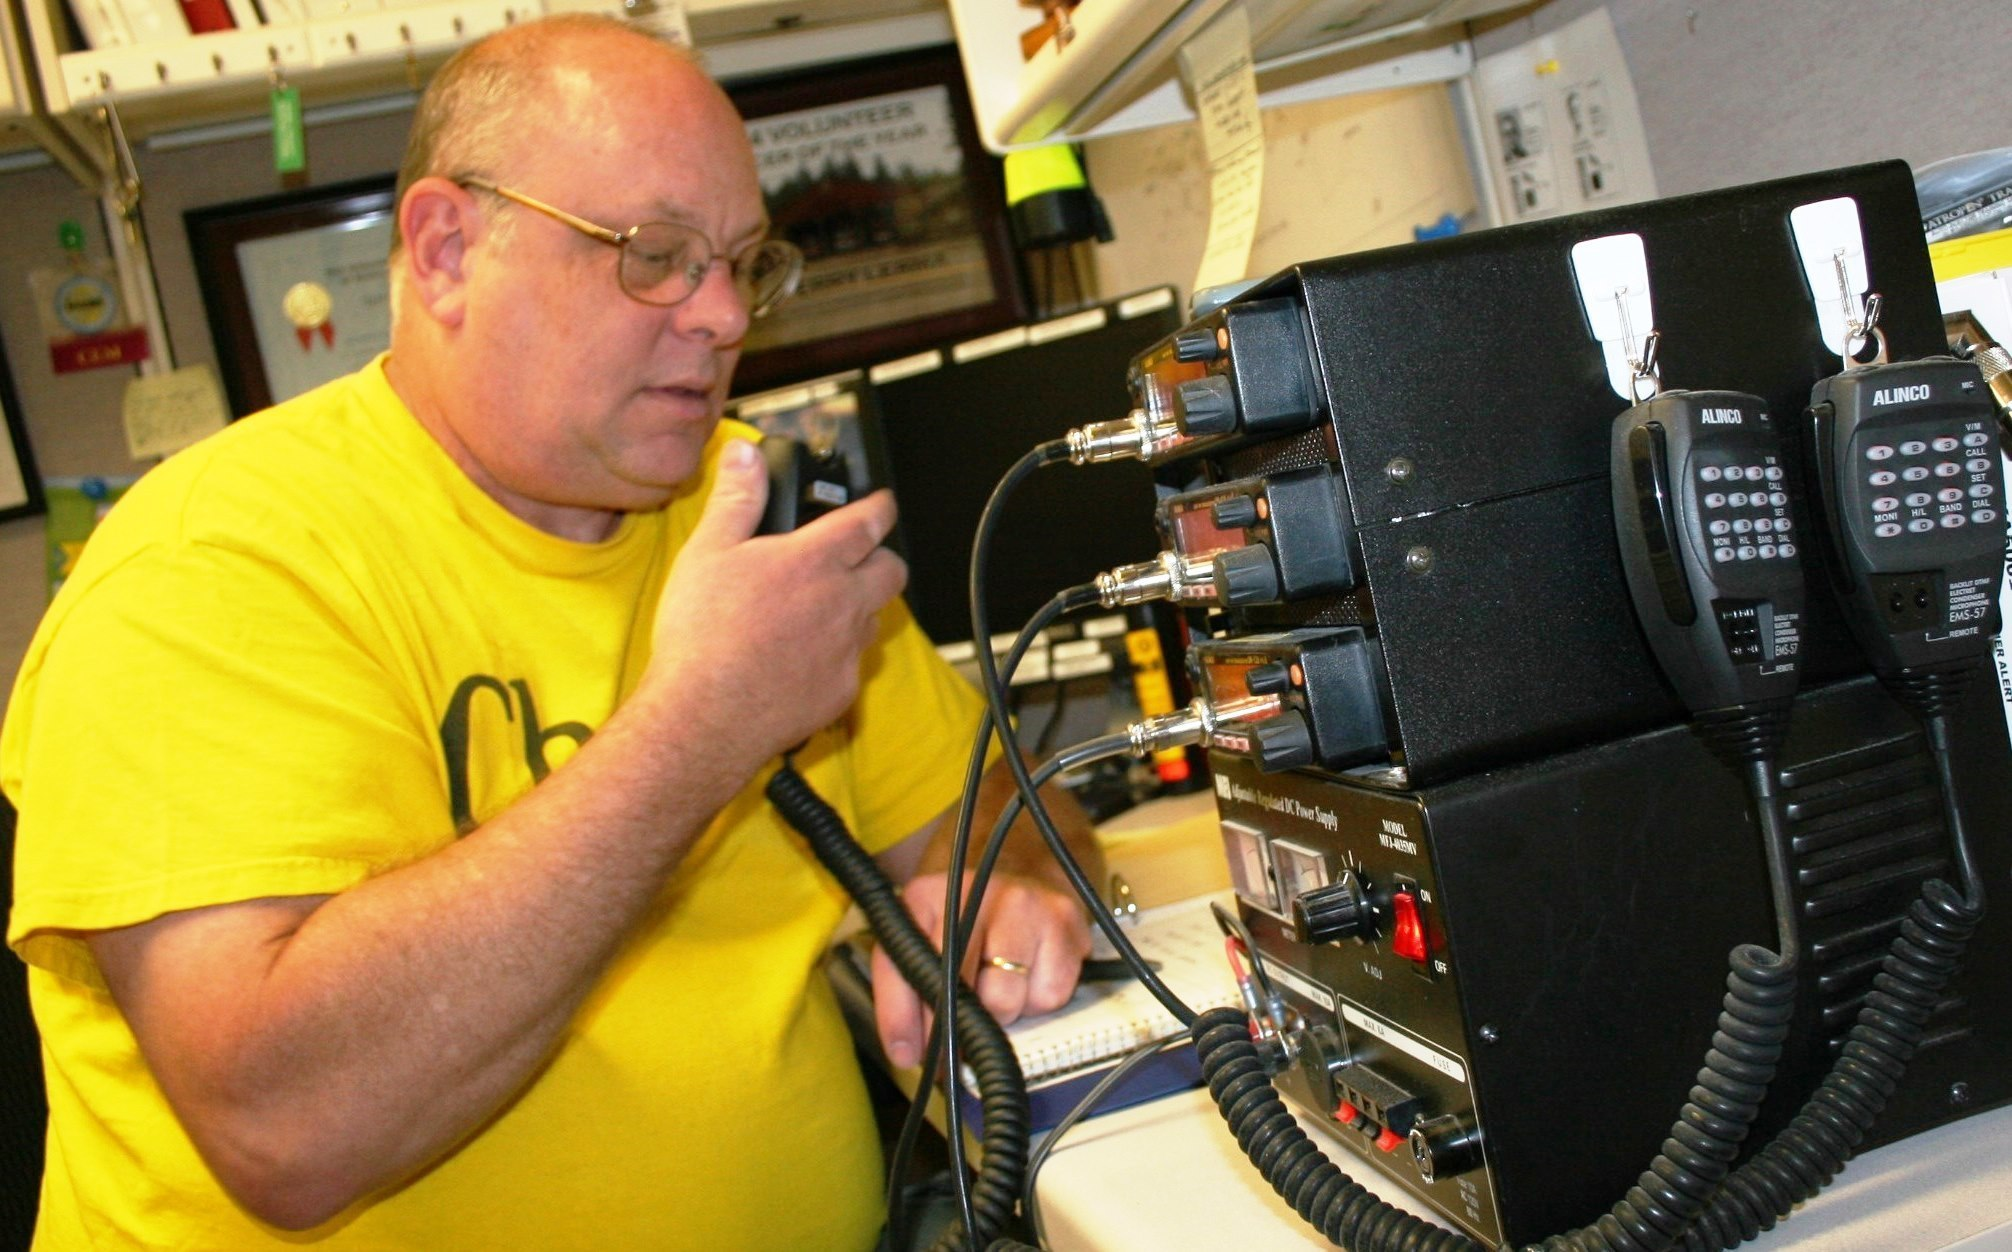 Retired Senior Chief Information System Technician Lee Moburg, a wireless amateur radio (HAM) operator, manned the HAM radio at Naval Hospital Bremerton during a 2016 exercise. Some Navy leaders are turning to ham radios to improve understanding of electronic warfare. (Douglas H Stutz/ U.S. Navy)